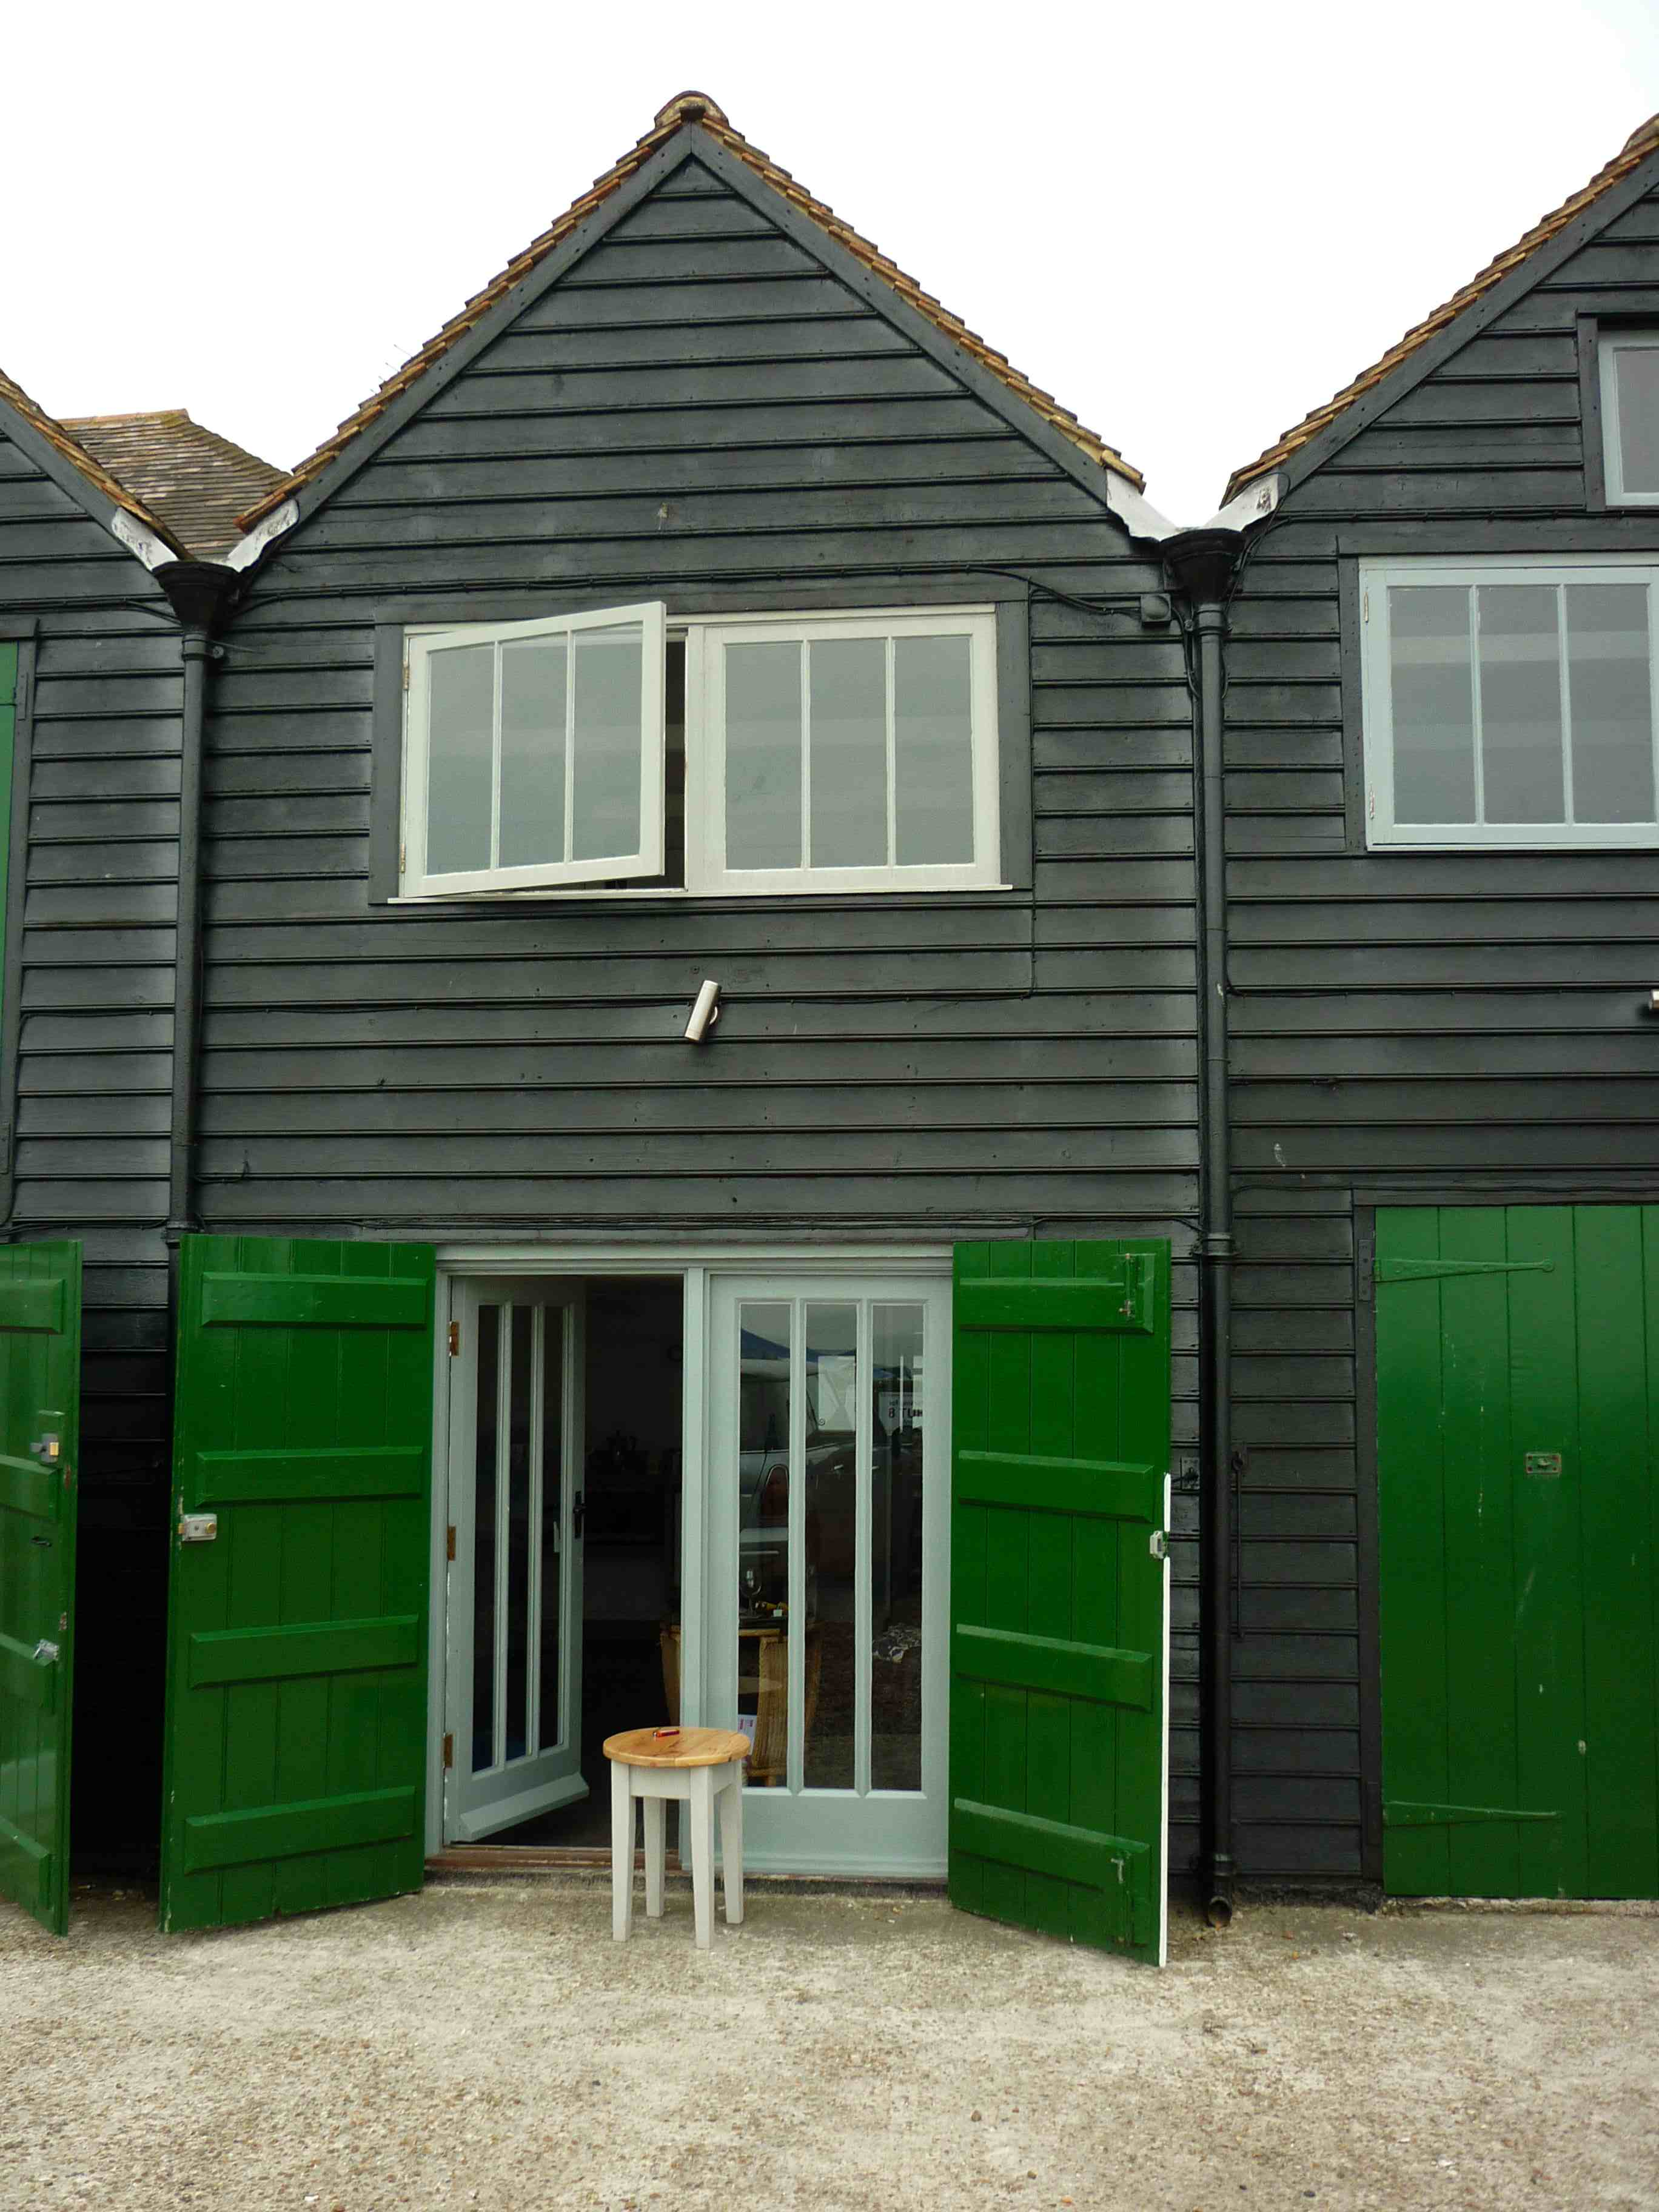 Black Red Green Whitstable Fishermans Huts My Friend